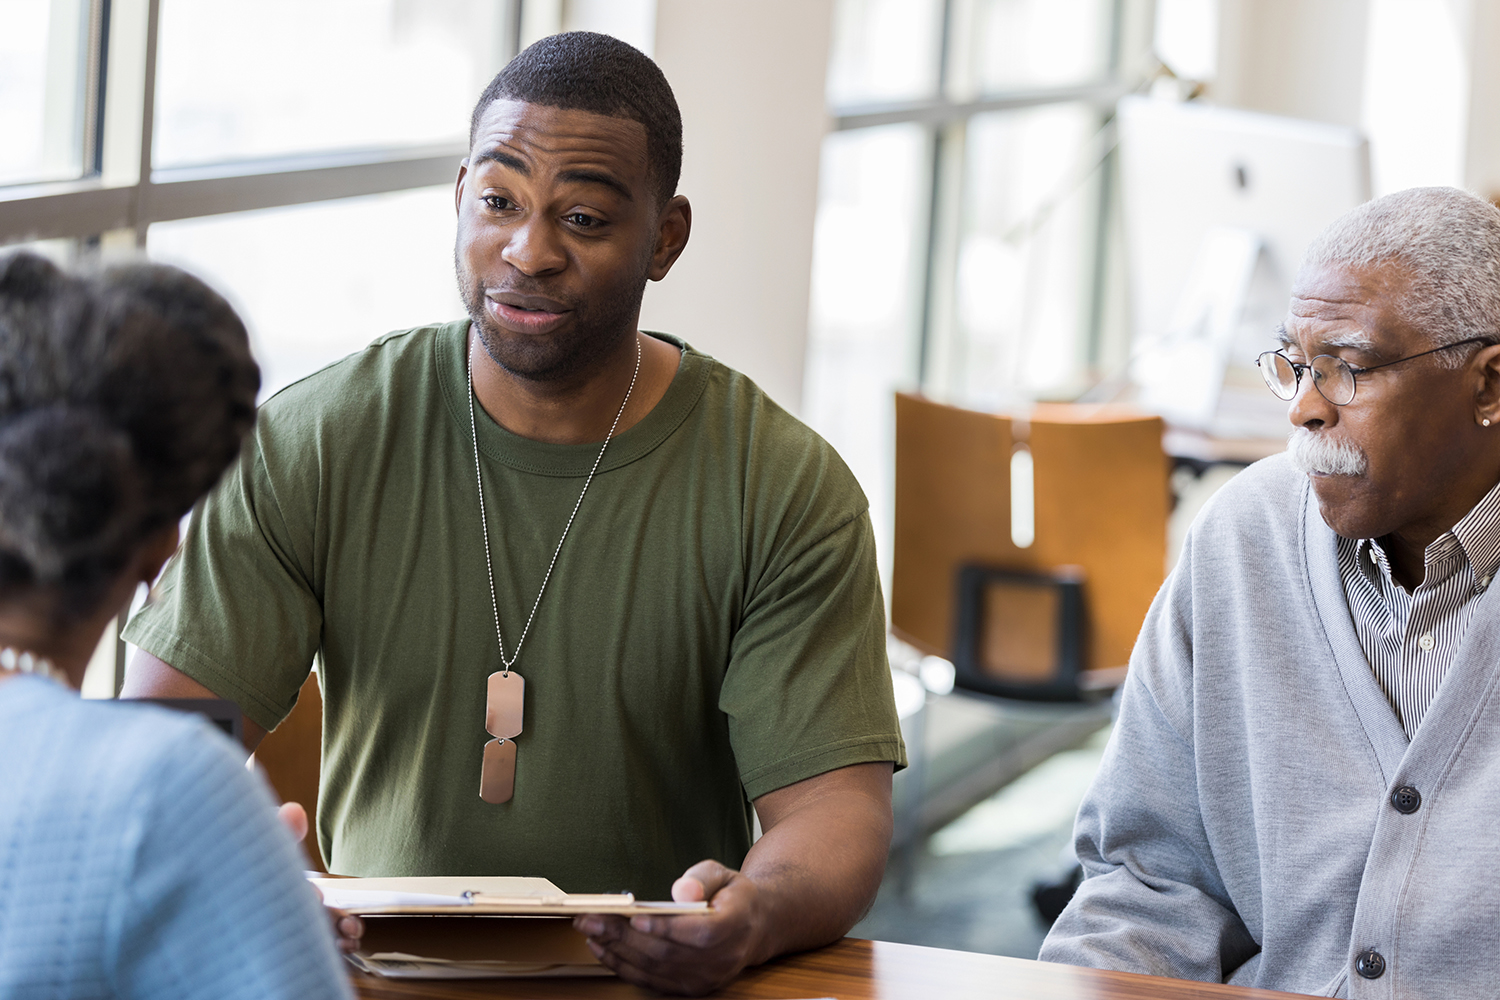 Military veteran meets with Financial Advisor, Financial Coaching for Veterans